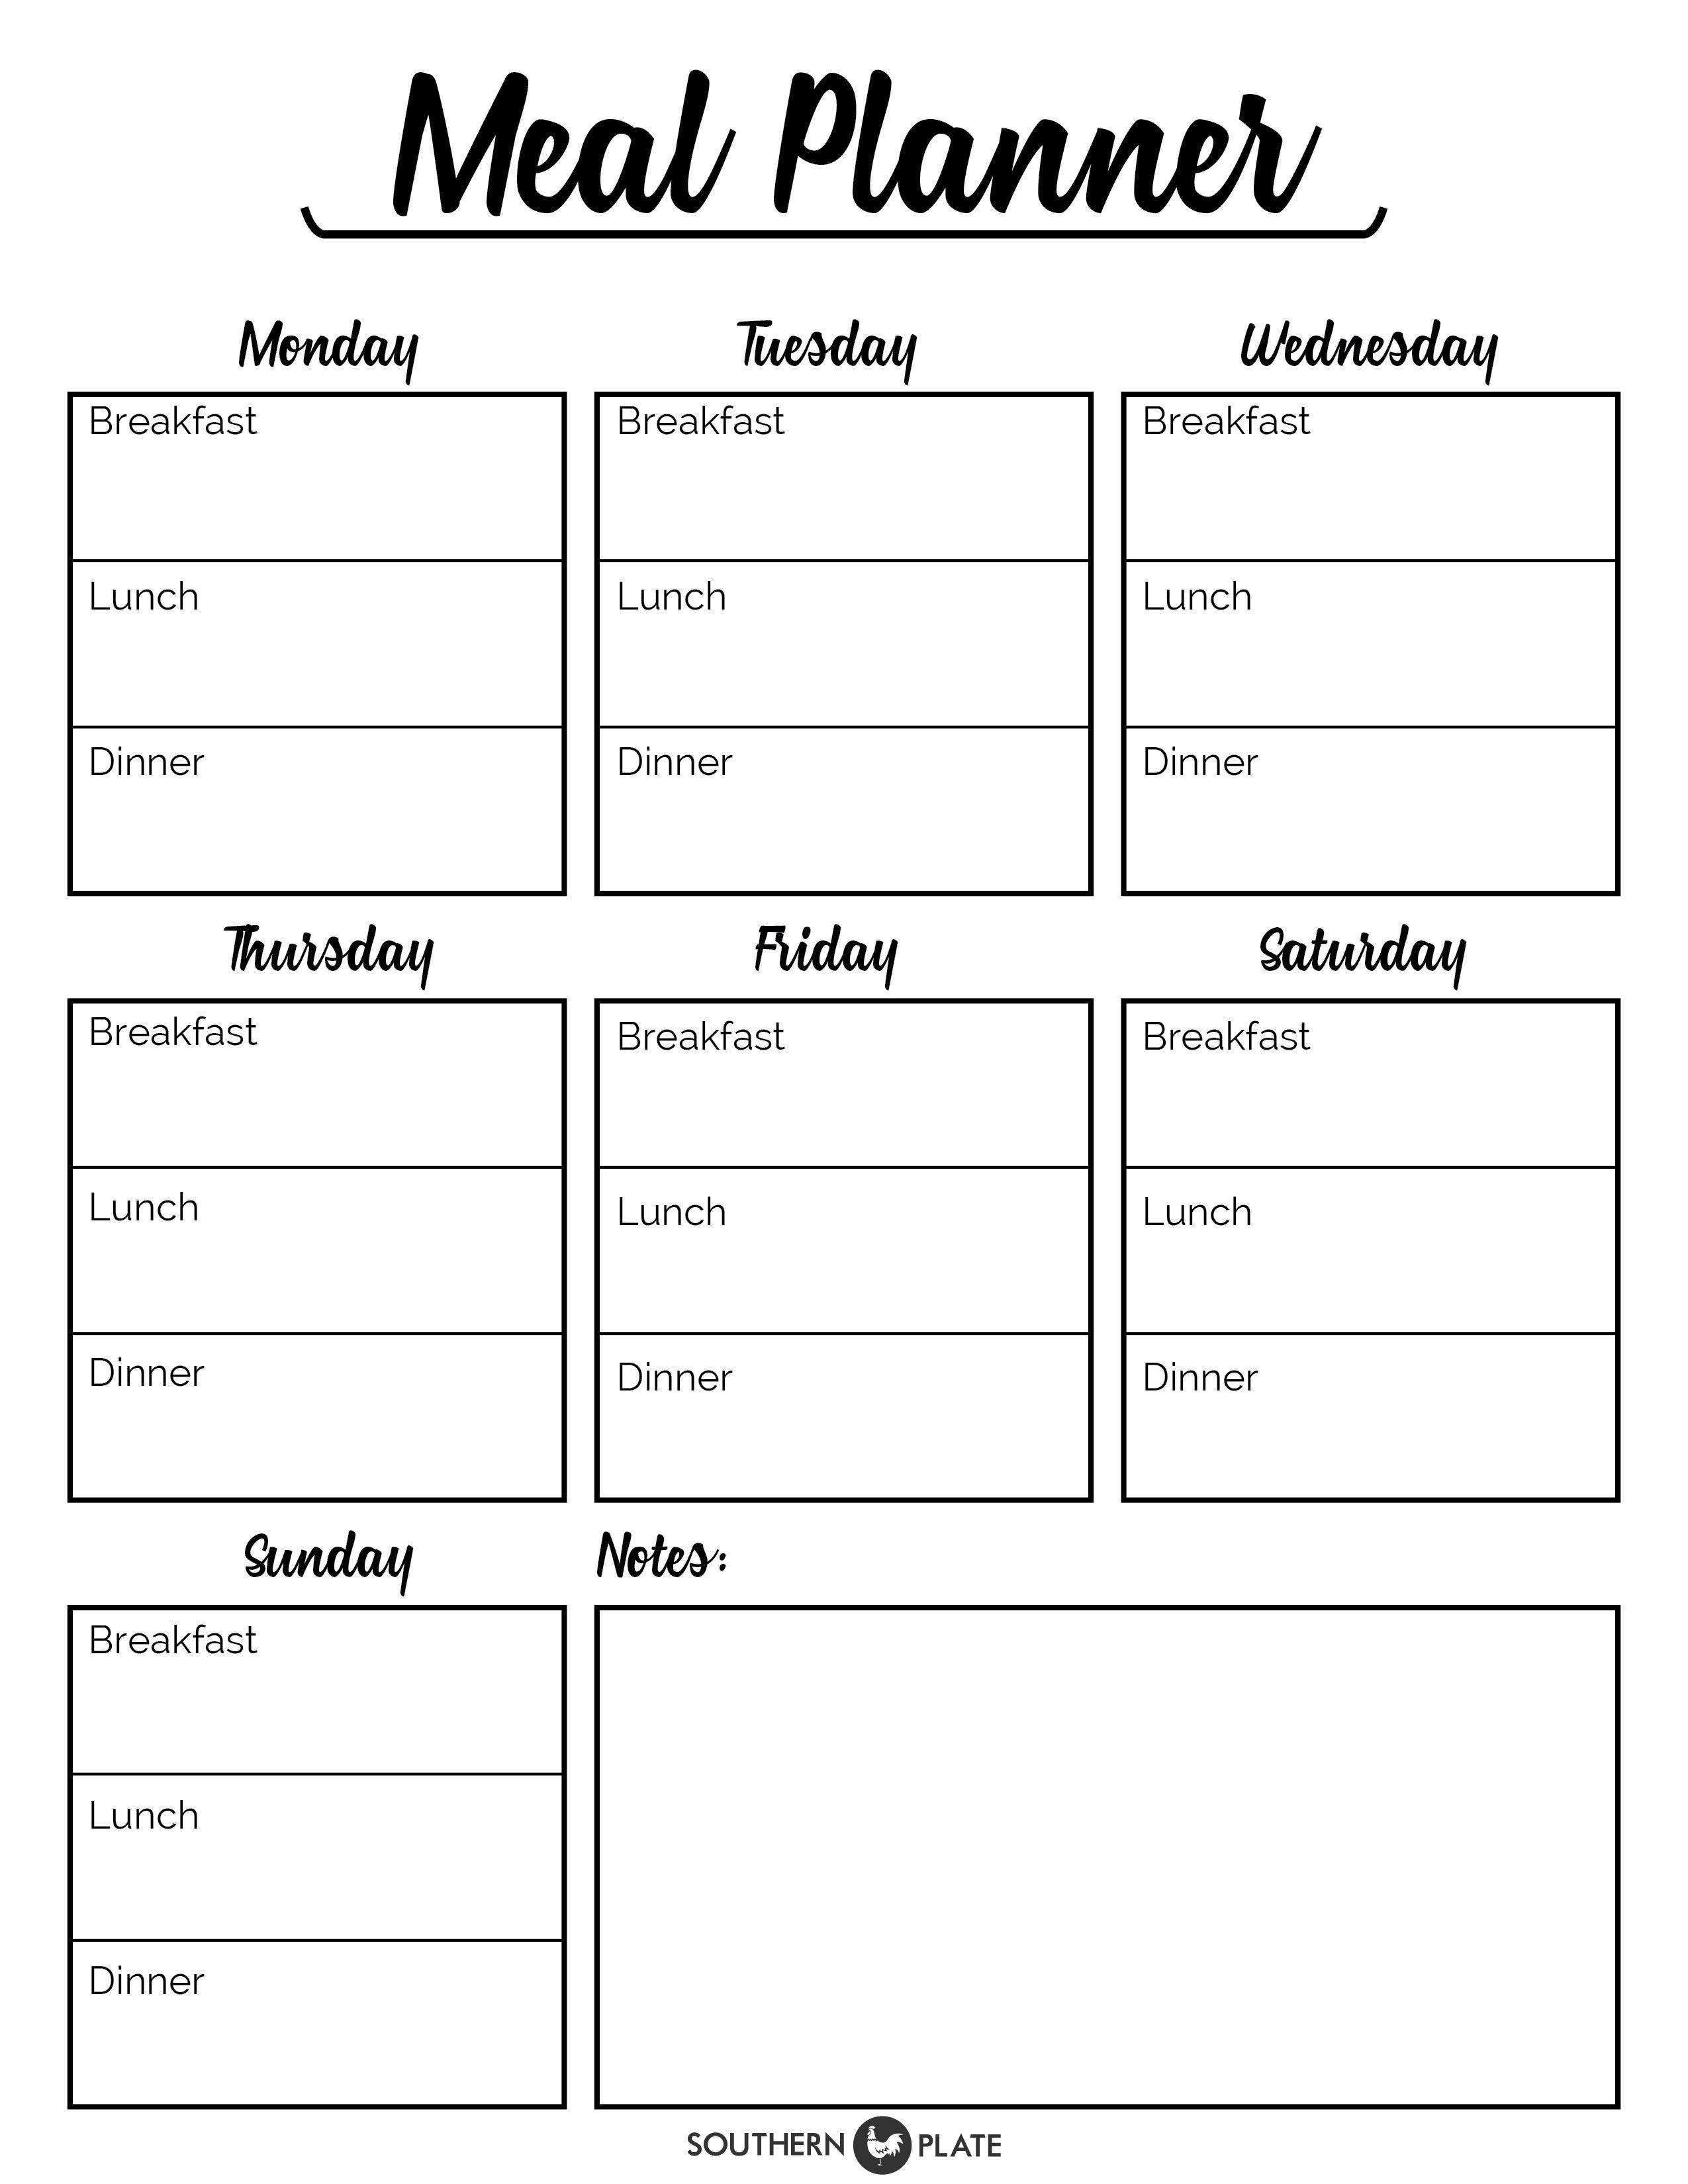 002 Rare Free Meal Planner Template Pdf Image  Weekly With Grocery List MonthlyFull